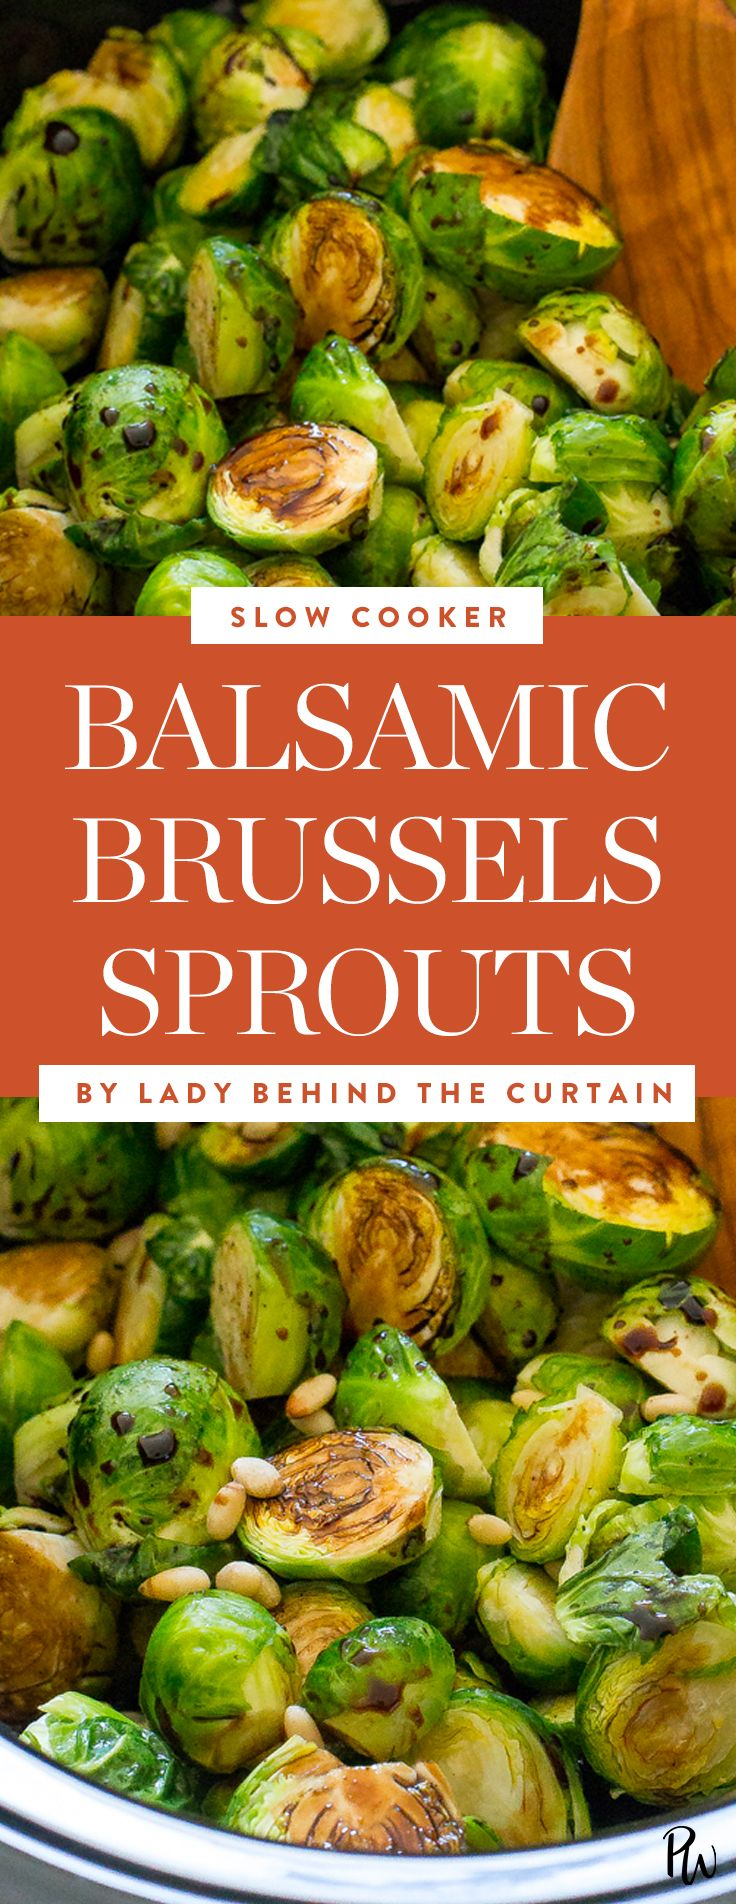 Balsamic brussels sprouts. Get this and more vegan slow cooker recipes to make now. #brusselssprouts #veganrecipes #veganslowcooker #slowcooker